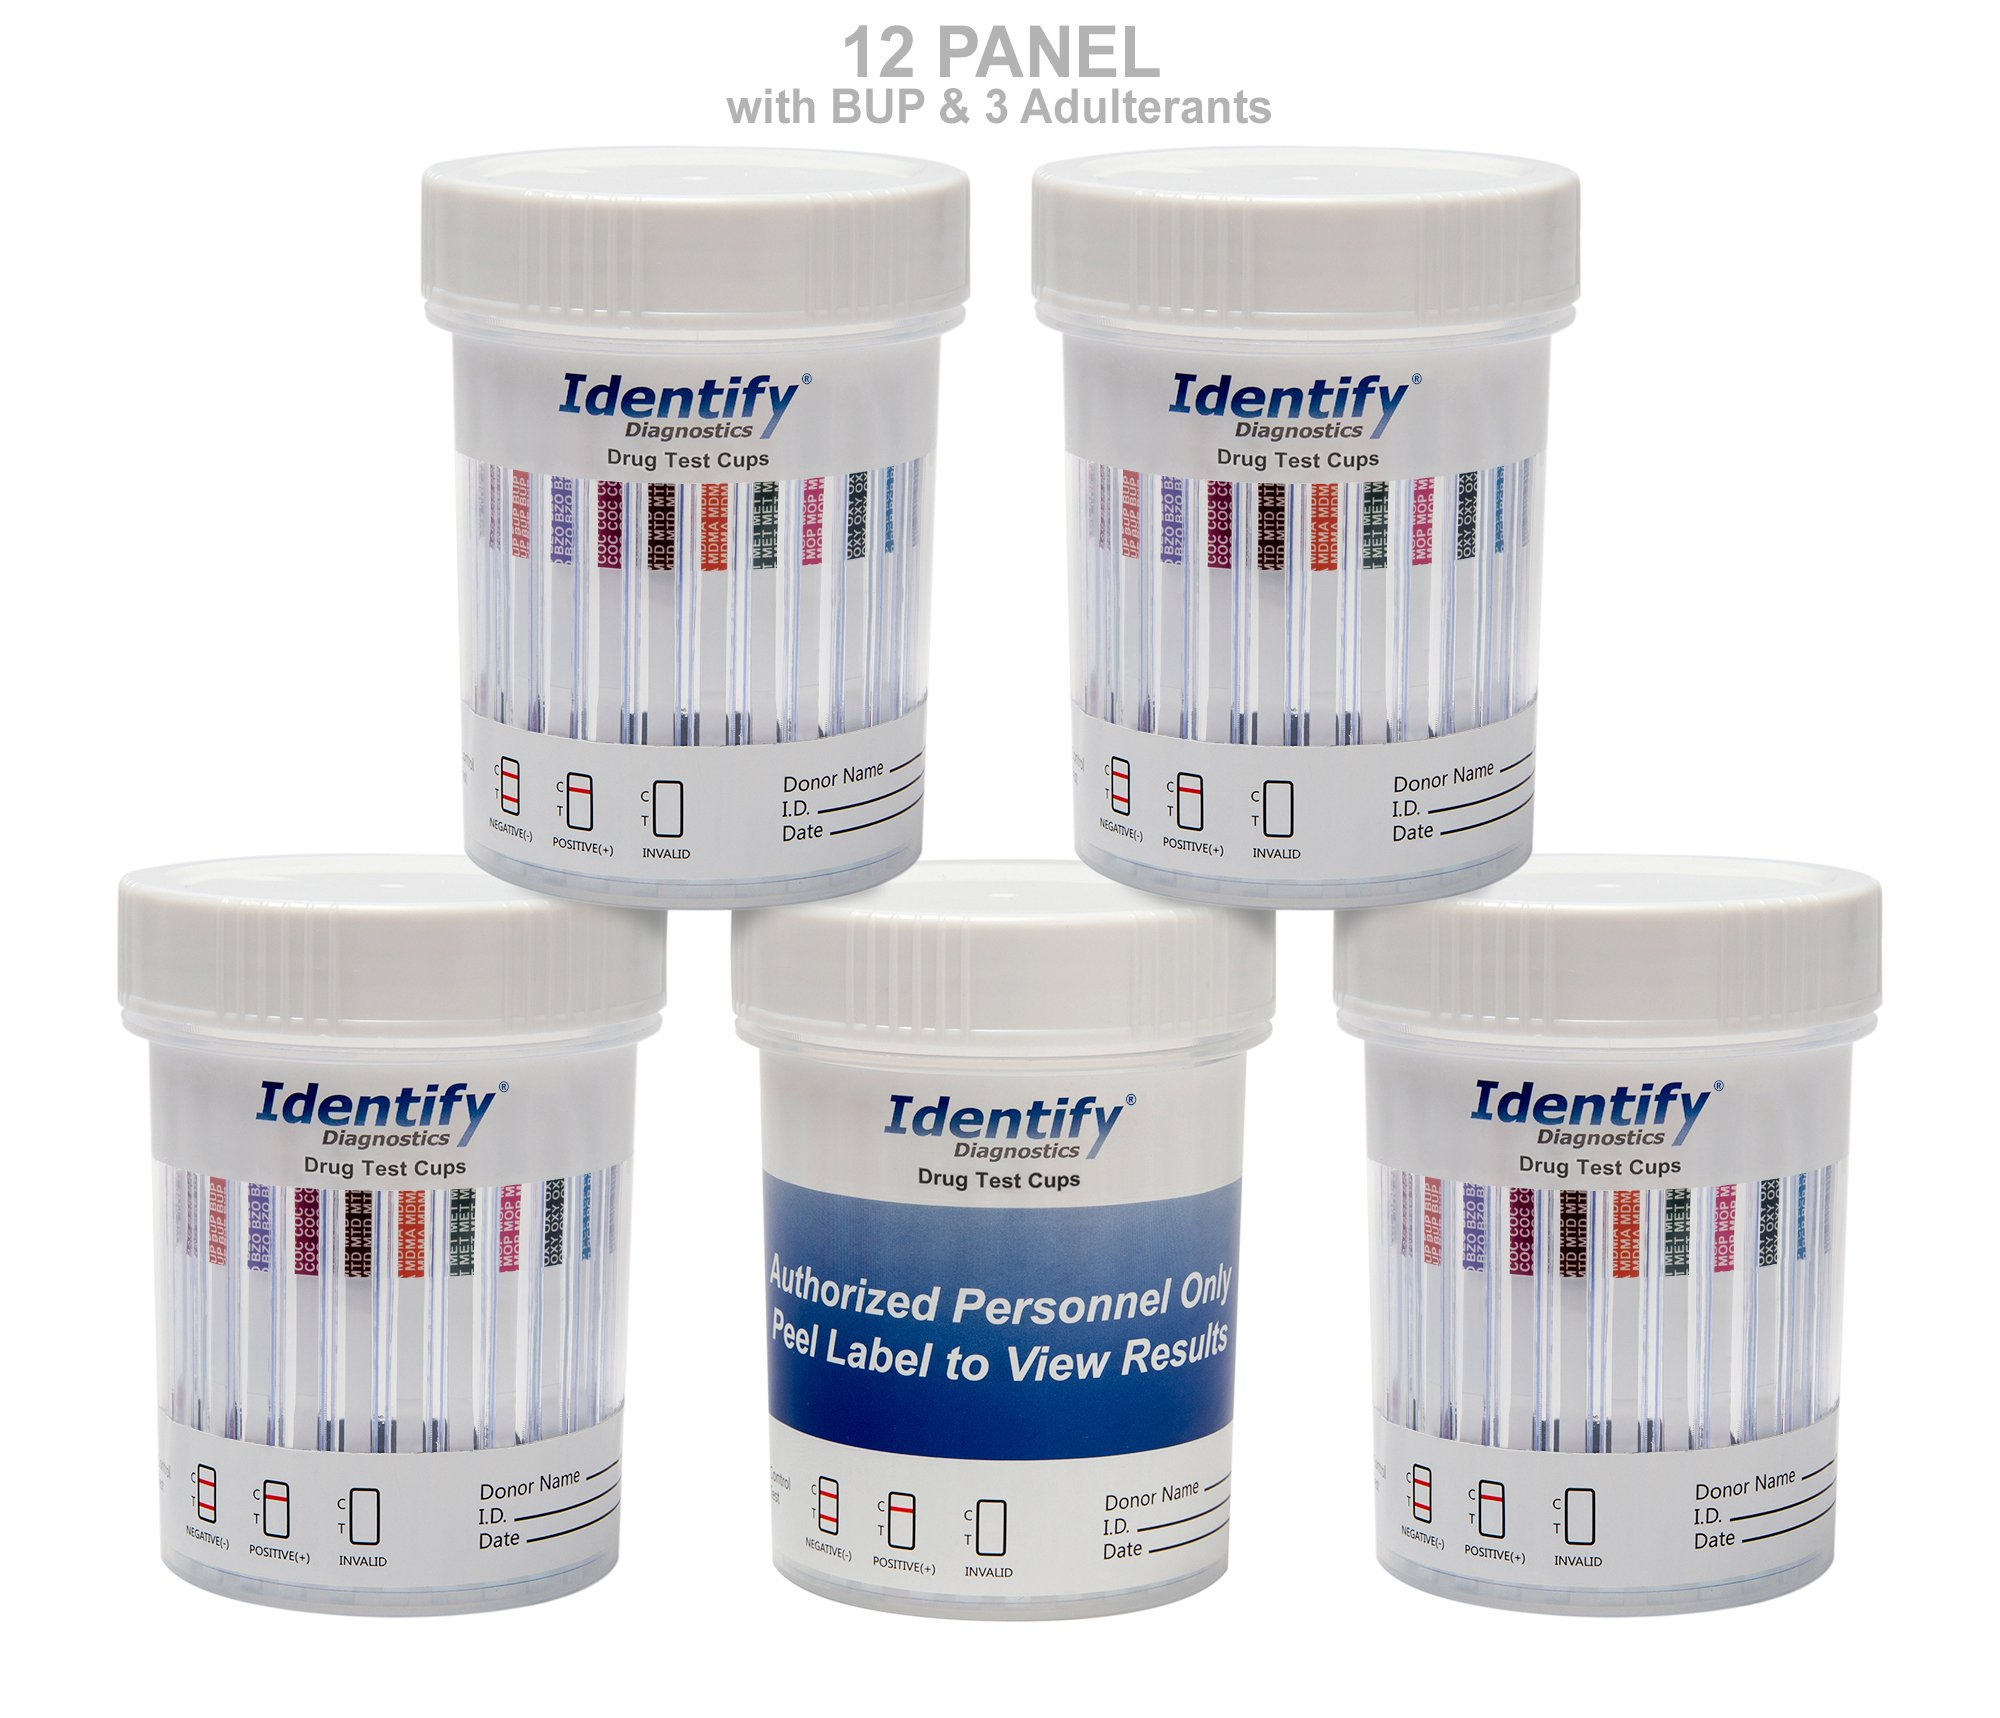 5 Pack Identify Diagnostics 12 Panel Drug Test Cup with 3 Adulterants PH, SG, CR - Testing Instantly for 12 Drugs: THC, COC, OXY, MDMA, BUP, MOP, AMP, BAR, BZO, MET, MTD, PCP #ID-CP12-BUP-ADULT